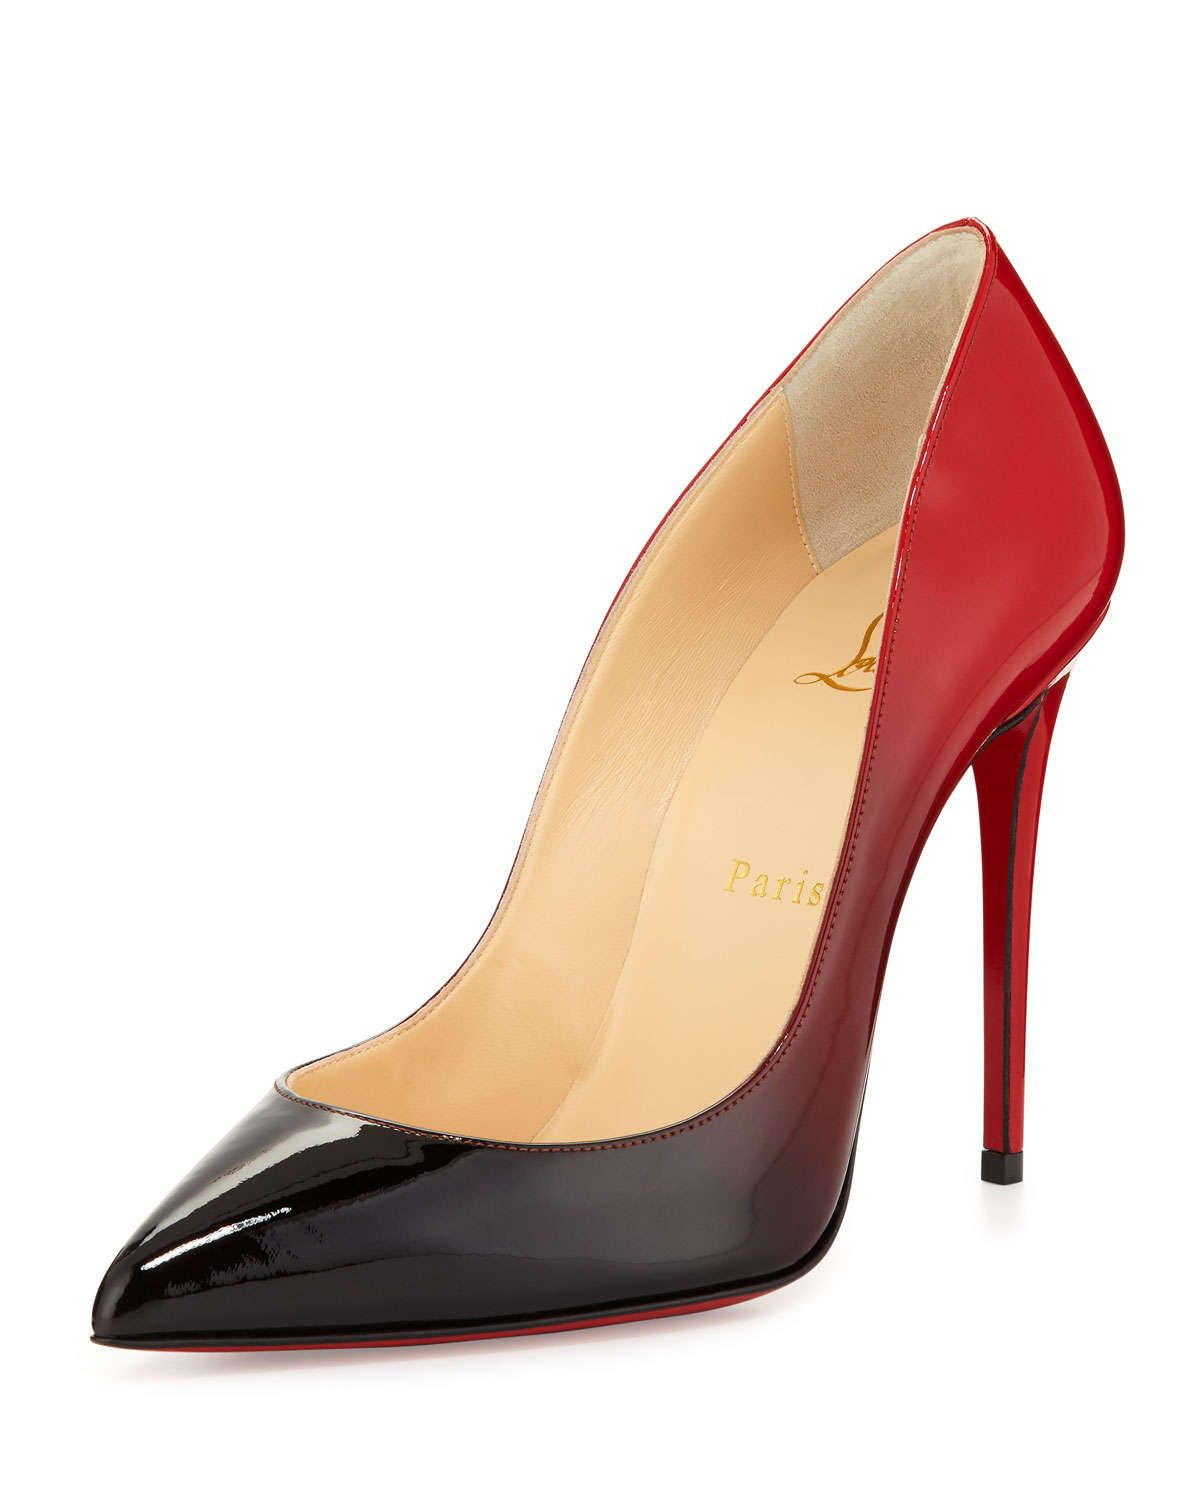 7bcde075fd7 Christian Louboutin Pigalle Follies Degrade Red Sole Pump